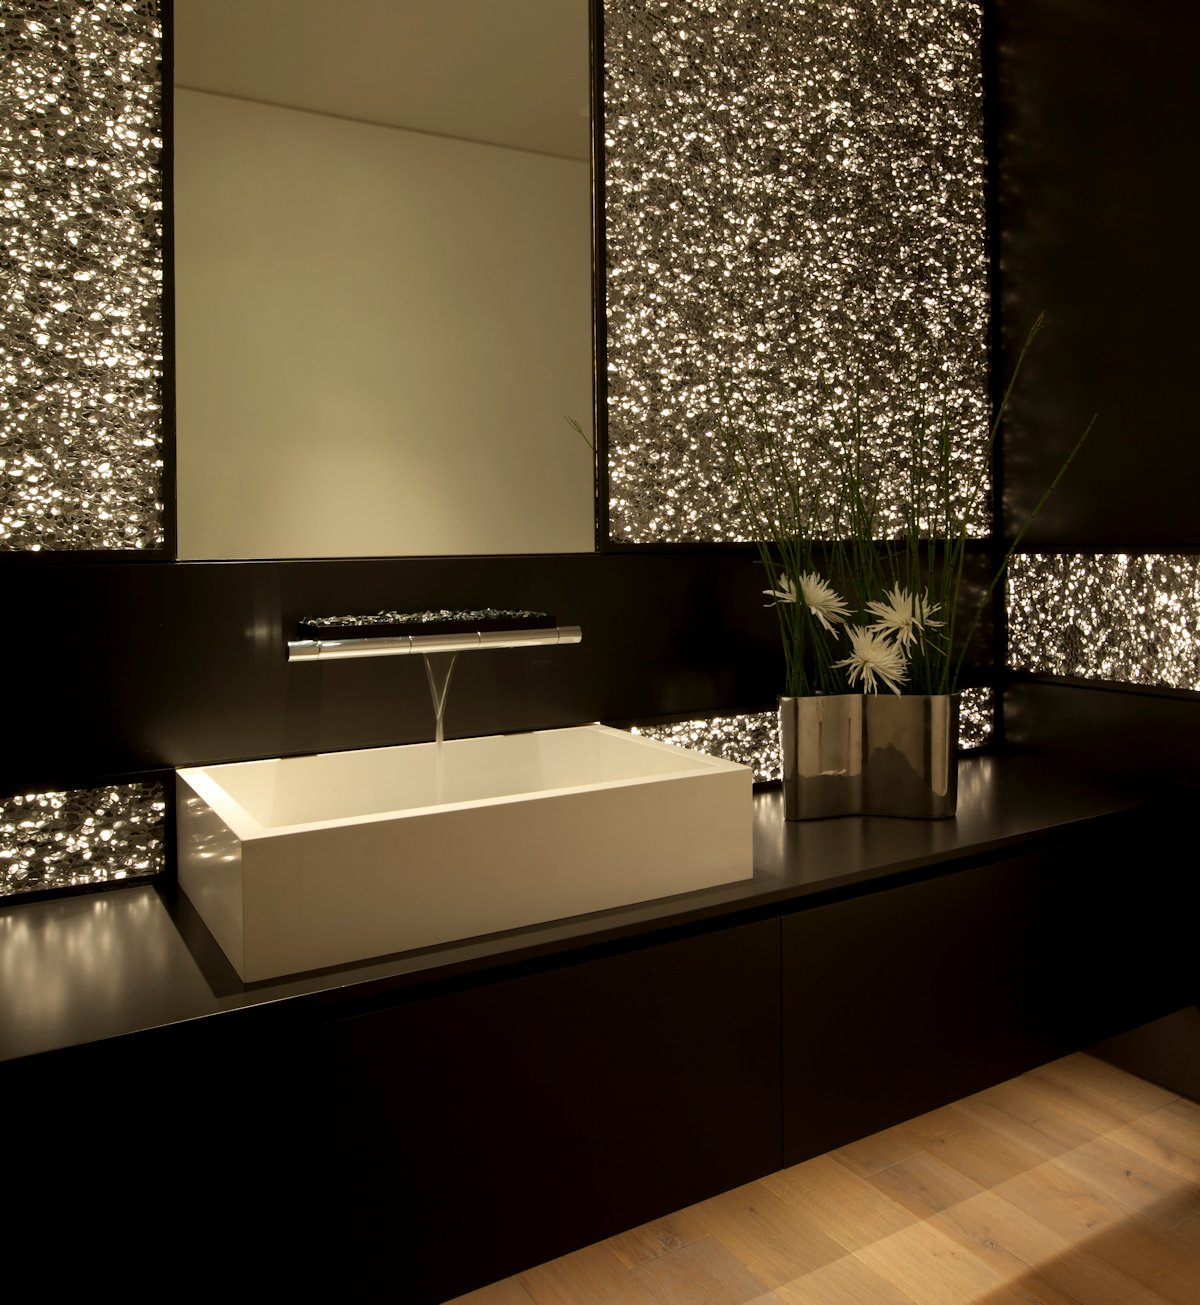 Sparkly Bathroom, Sink, Beach House in Laguna Beach, California